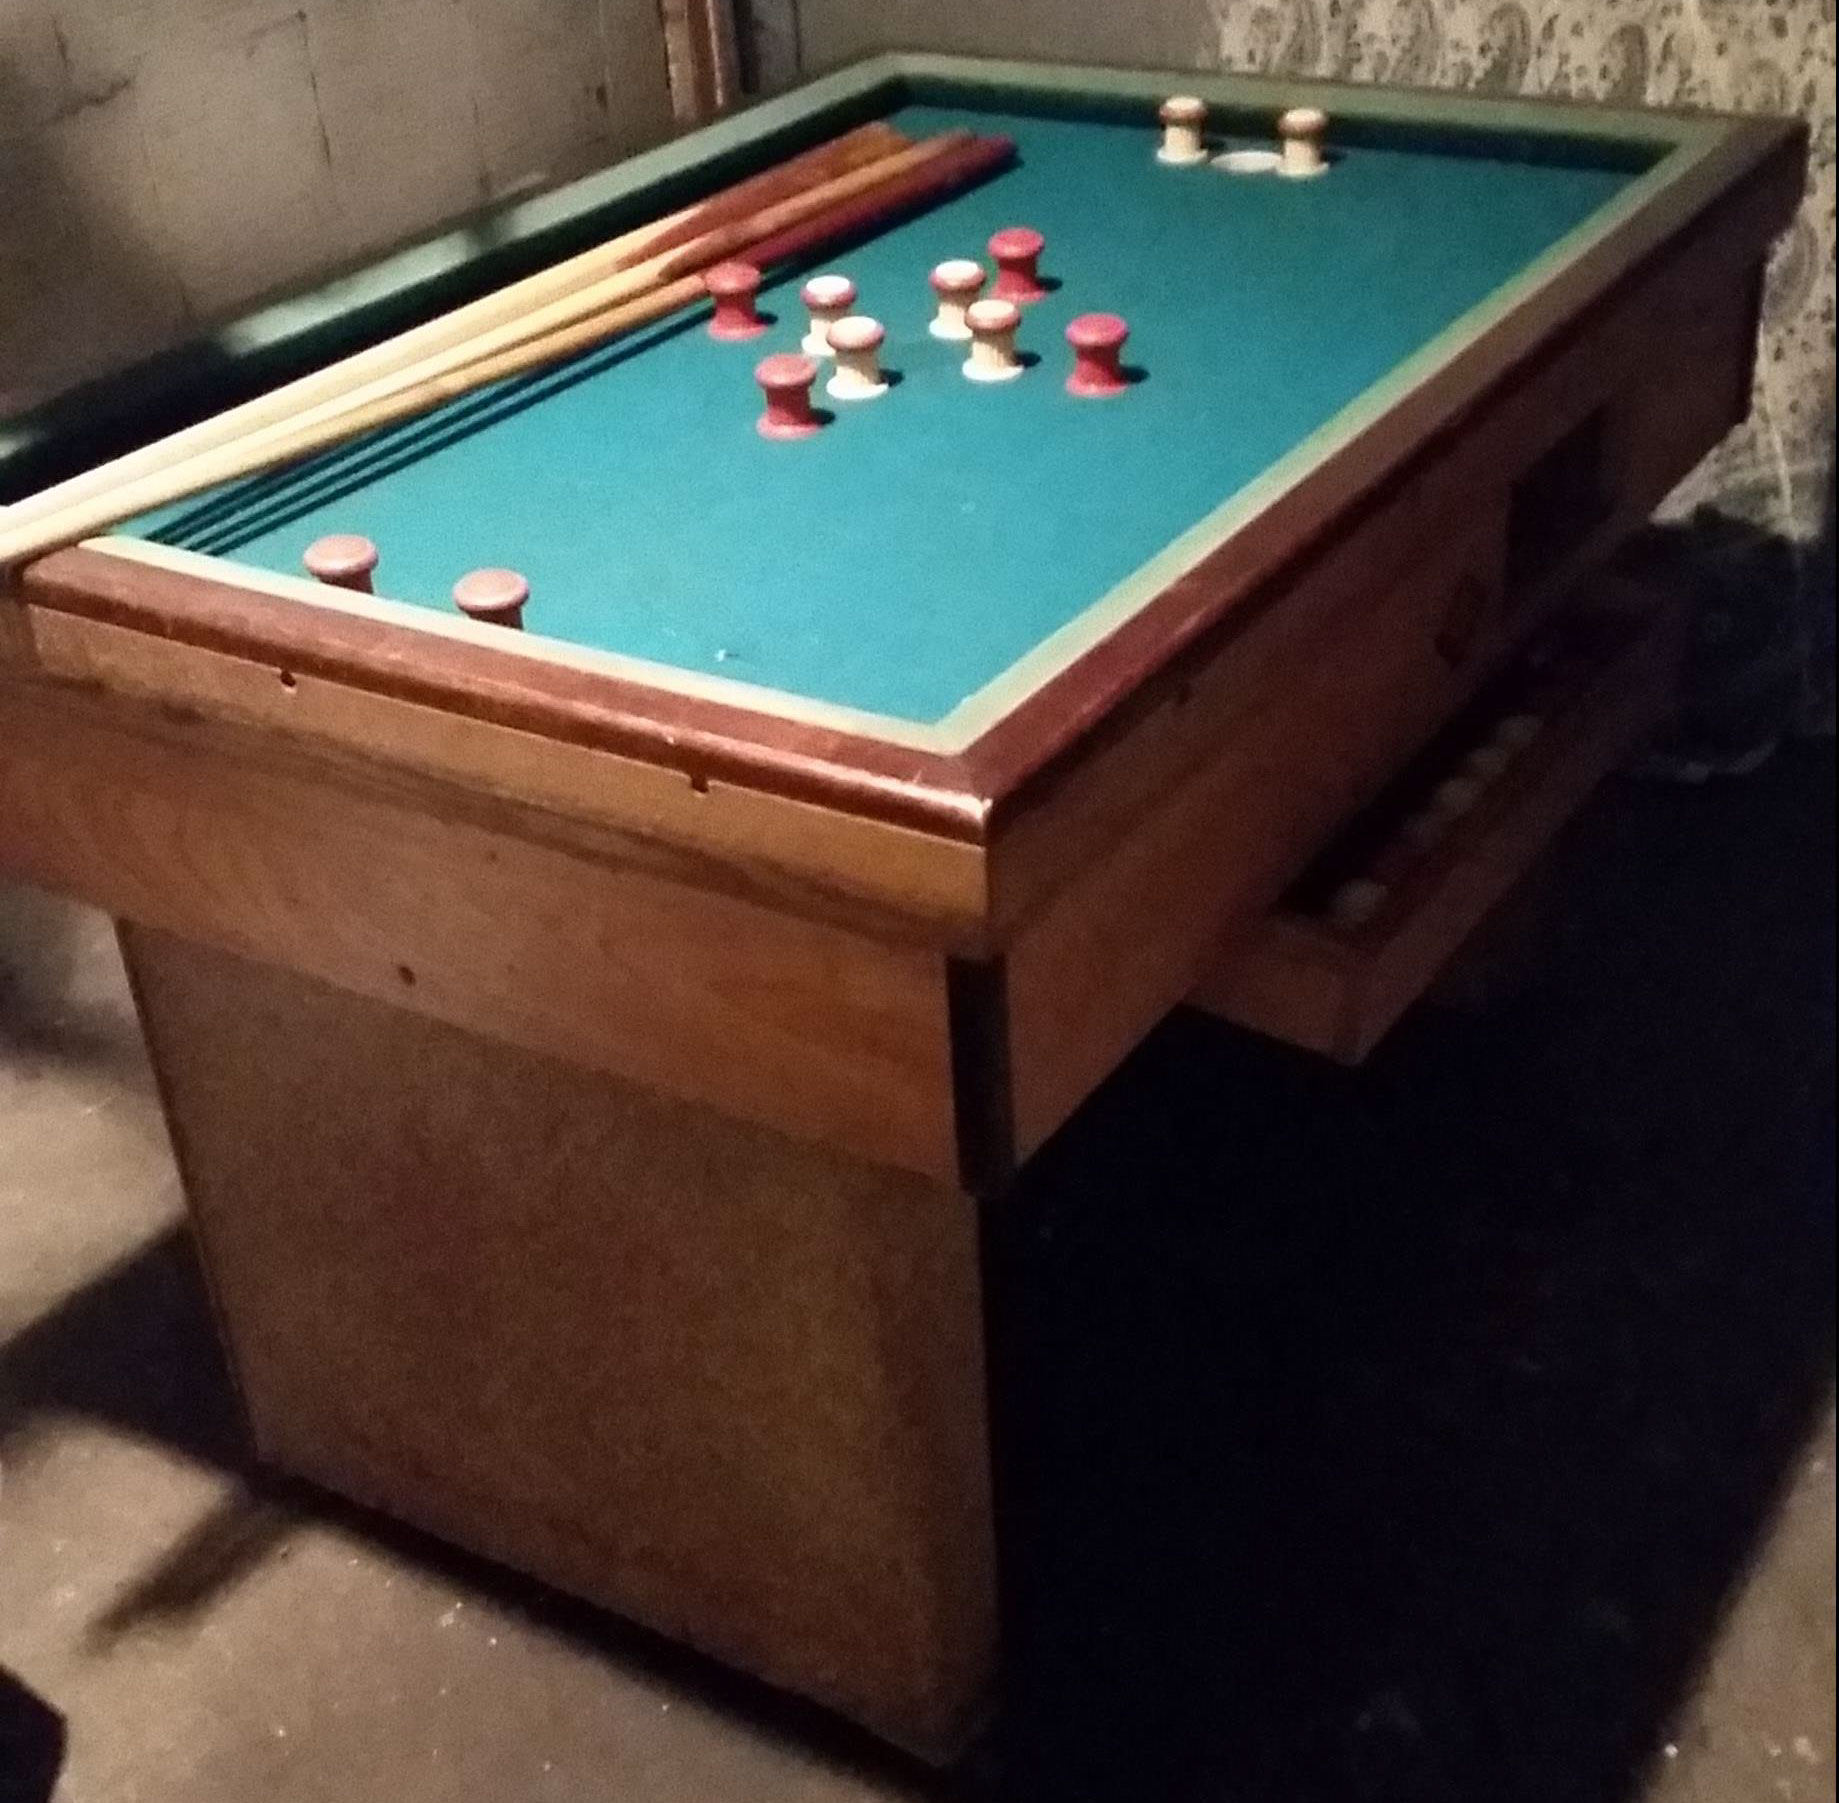 Vintage bumper pool table for sale in chicago il - Bumper pool bumpers ...